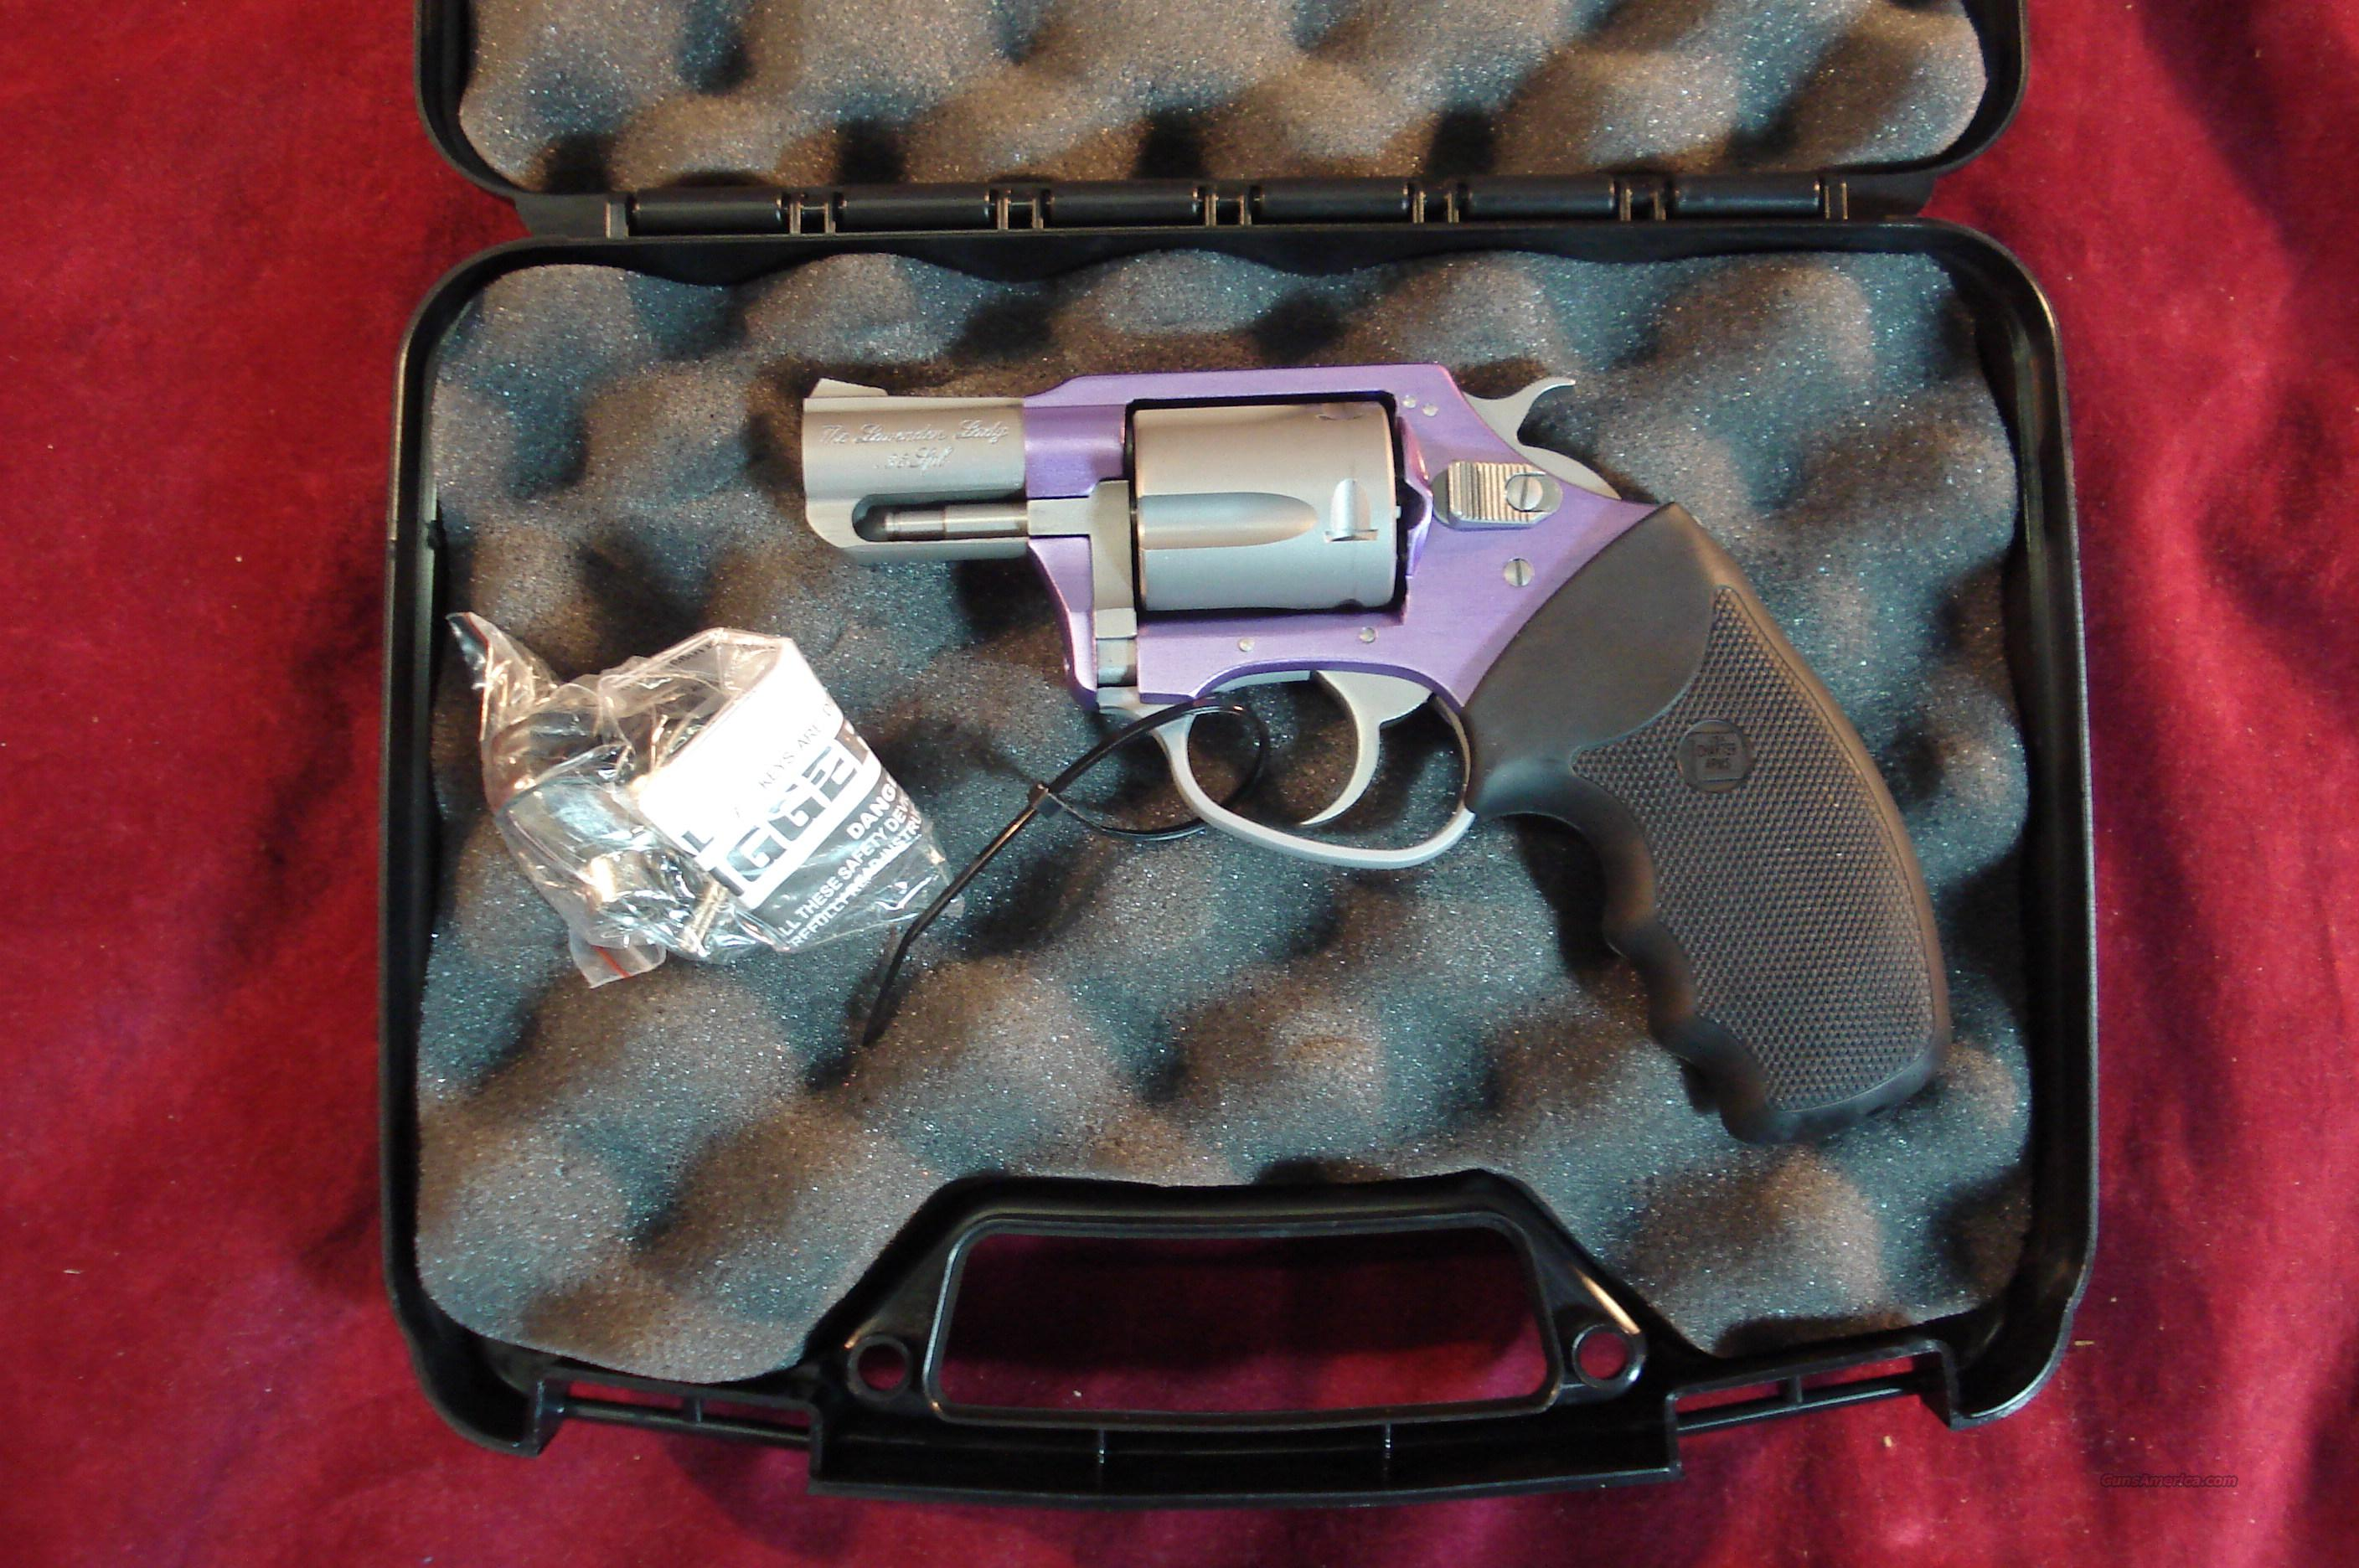 CHARTER ARMS LAVENDER LADY 38+P CAL LAVENDER ALUMINUM FRAME NEW  Guns > Pistols > Charter Arms Revolvers